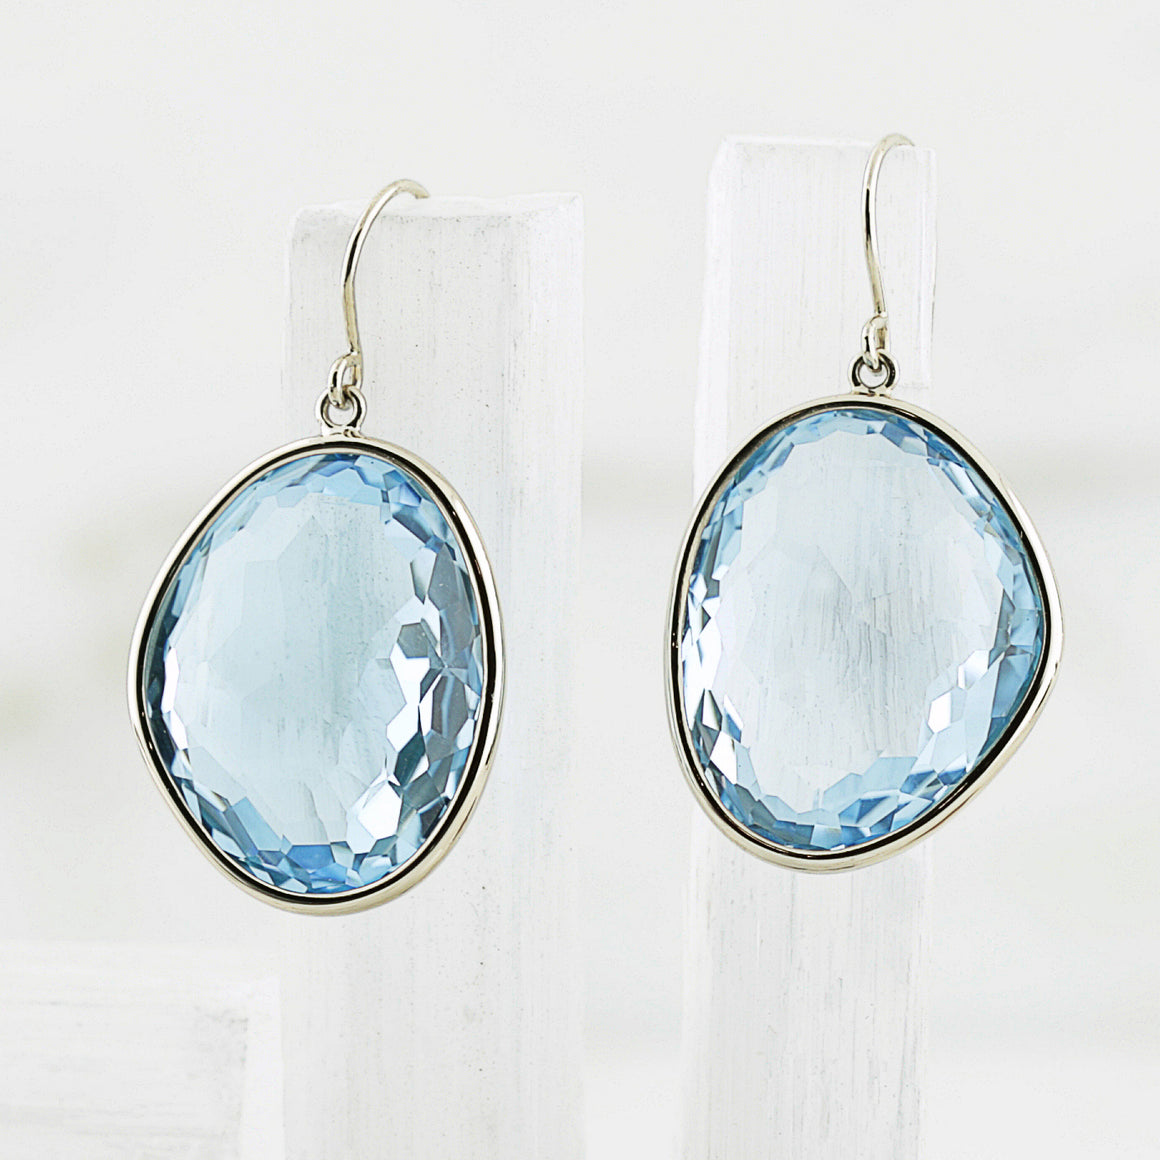 Piedras Earrings with Blue Topaz - Large